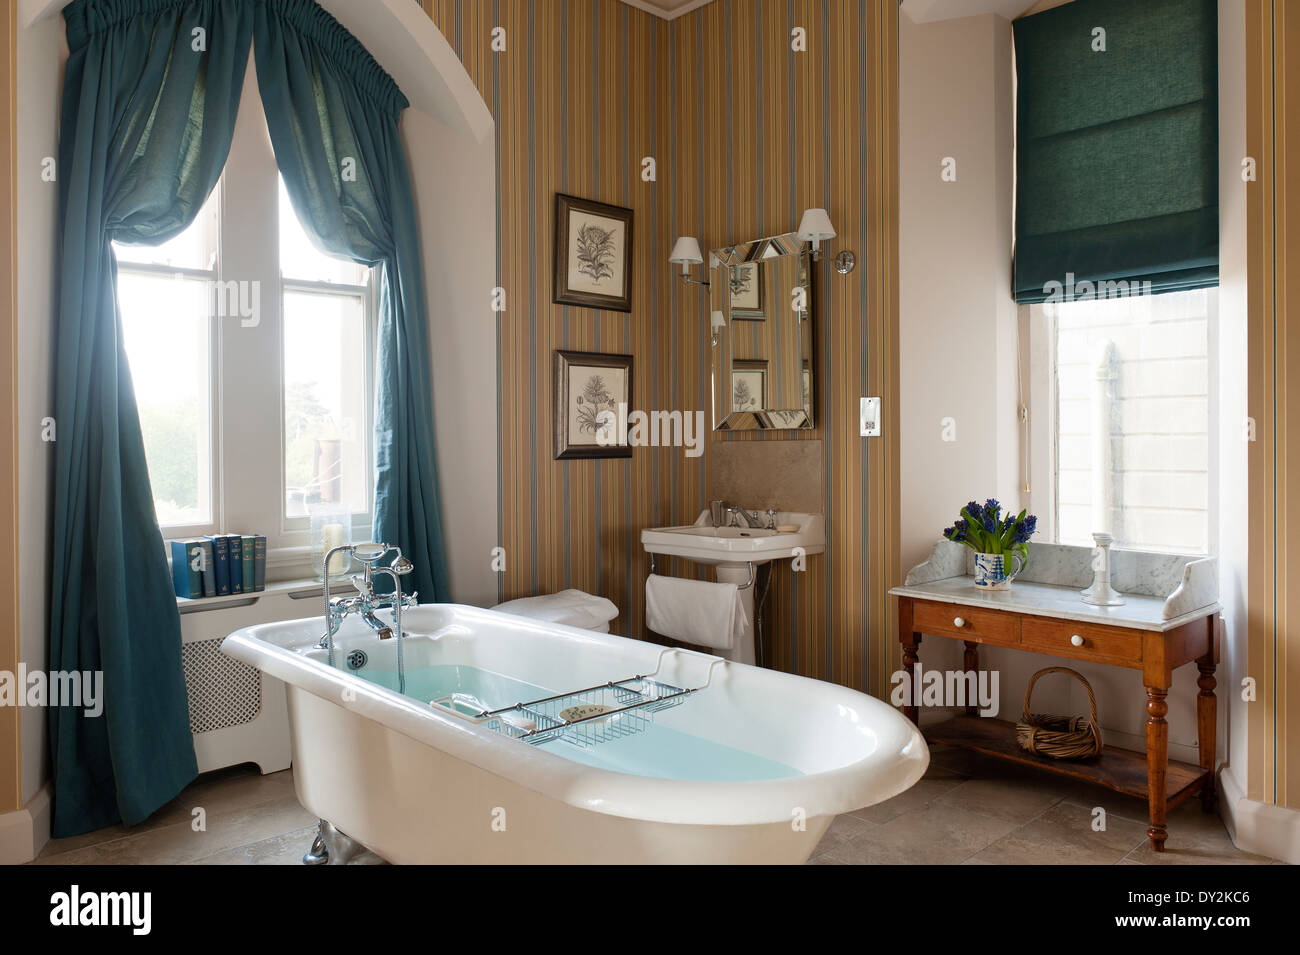 Free Standing Roll Top Bath In Bathroom With Striped Wallpaper And Teal  Curtains And Blind